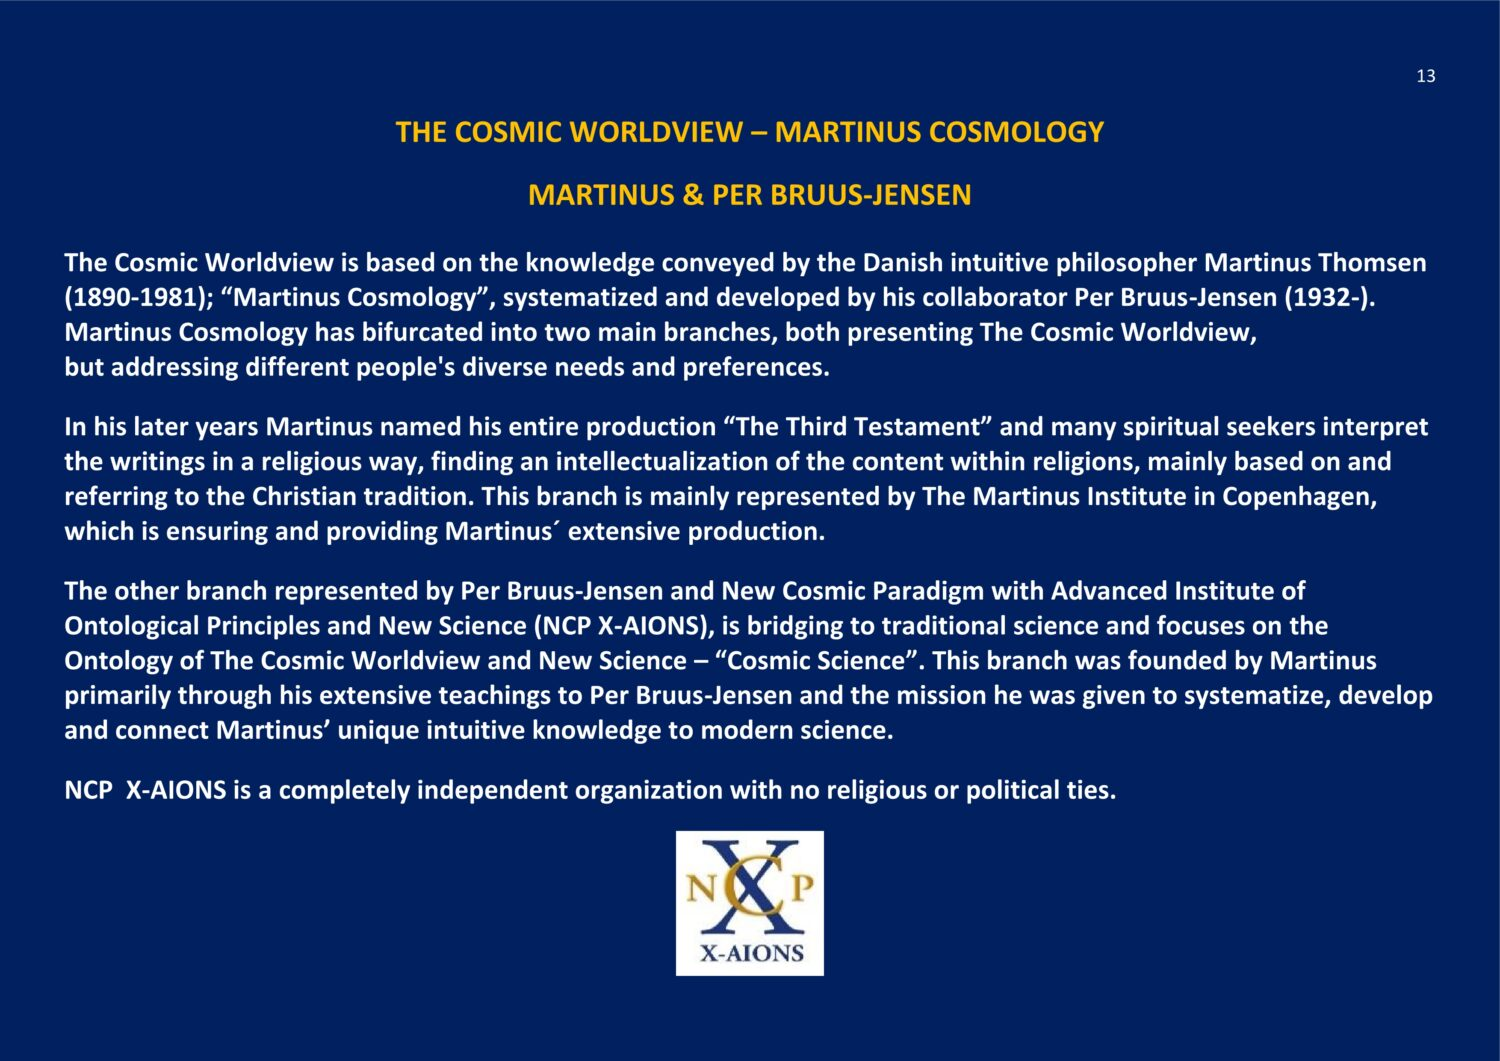 The Cosmic Worldview Martinus Cosmology NCP X-AIONS